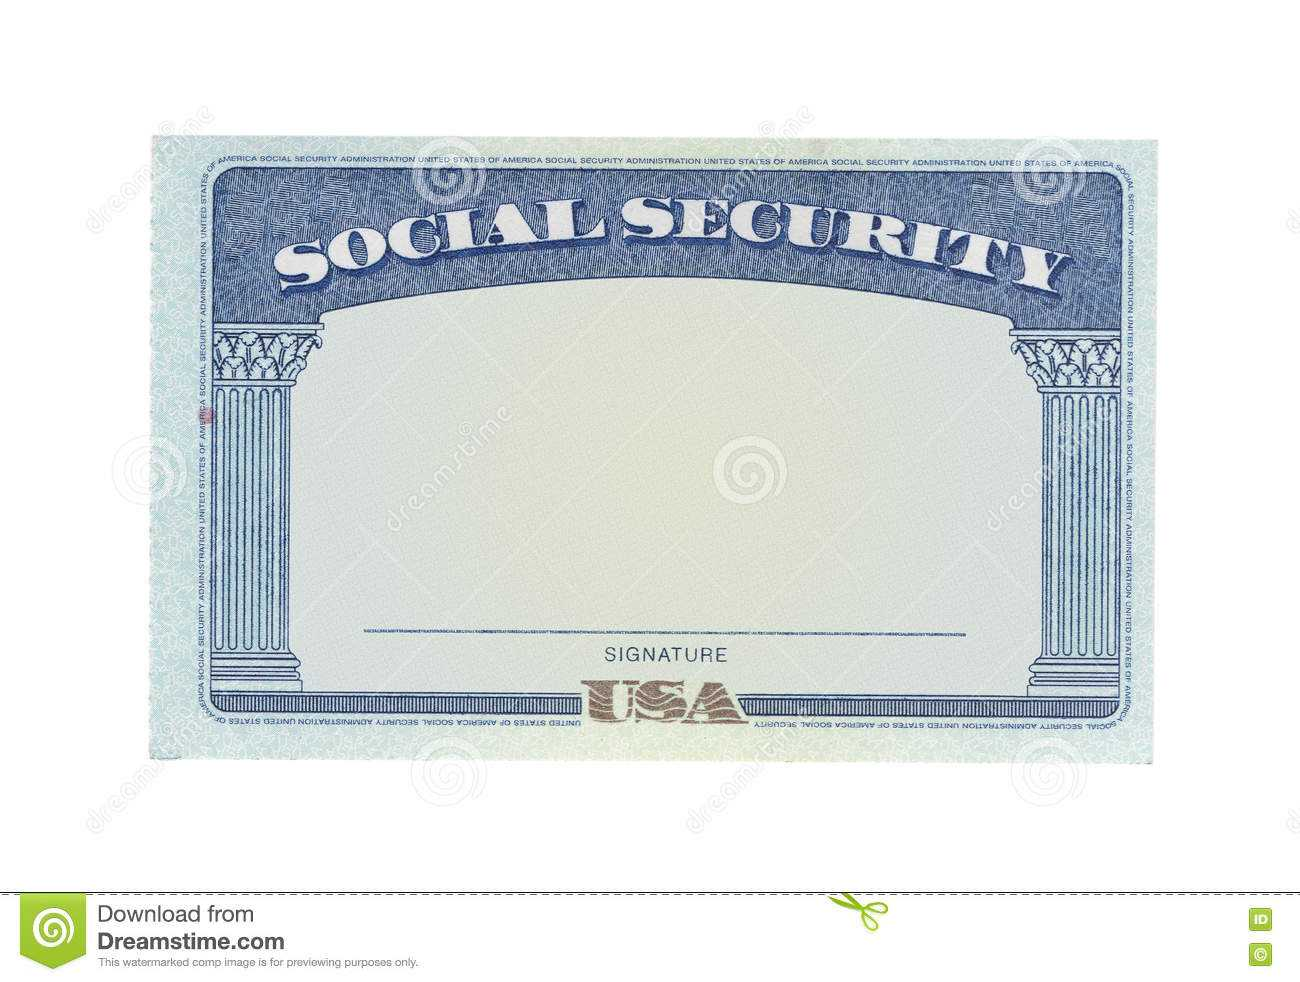 Blank Social Security Card Template Download - Great For Social Security Card Template Free